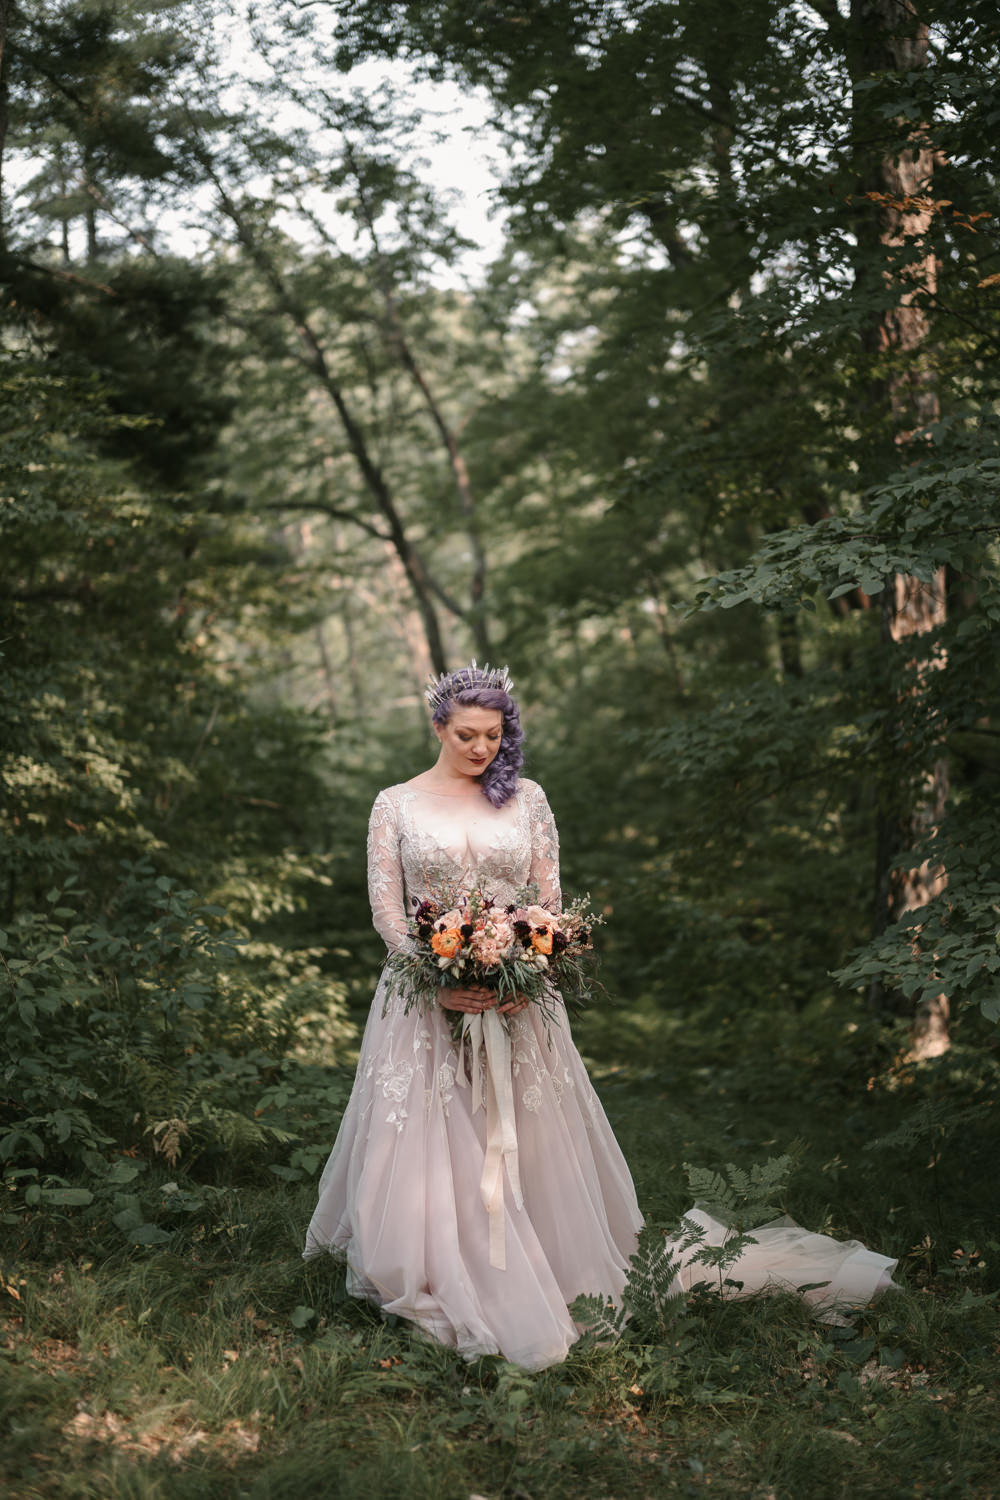 Bride Bridal Dress Gown Long Sleeves Lace Hayley Paige Train Fantasy Nerdy Wedding Eric Lundgren Photography